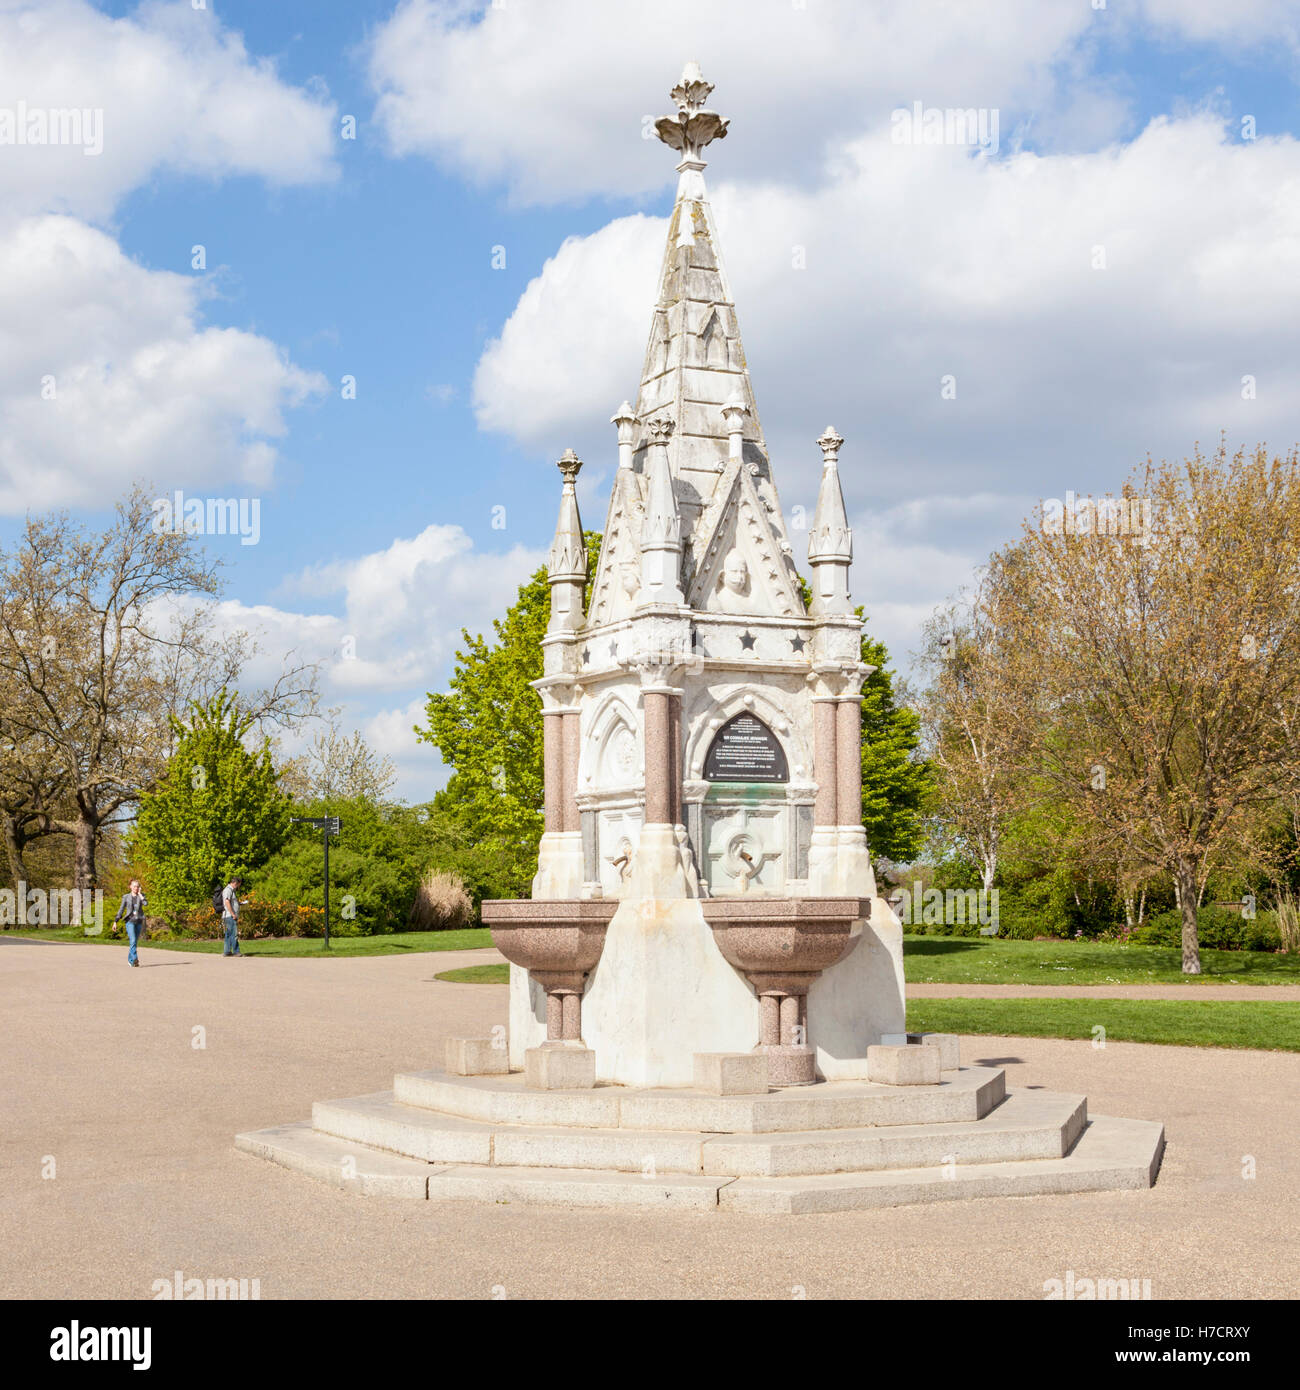 The Ready Money drinking fountain on Broad Walk at Regents Park, London, England, UK - Stock Image